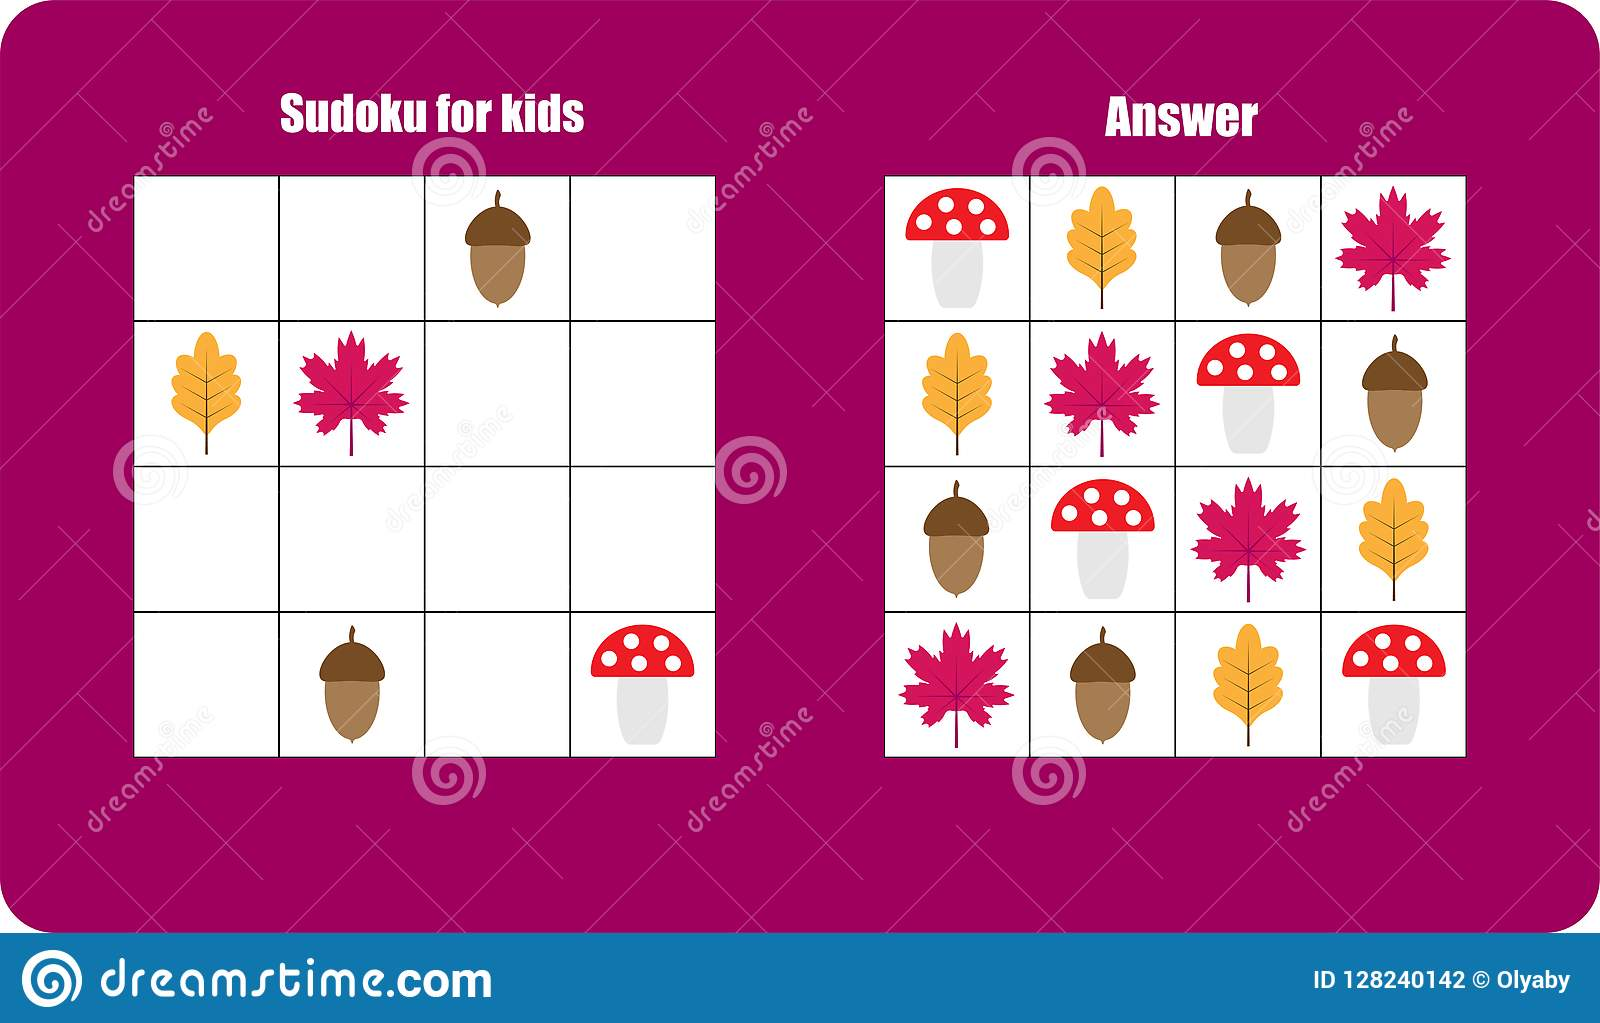 Sudoku Game With Autumn Pictures Mushroom Leaf For